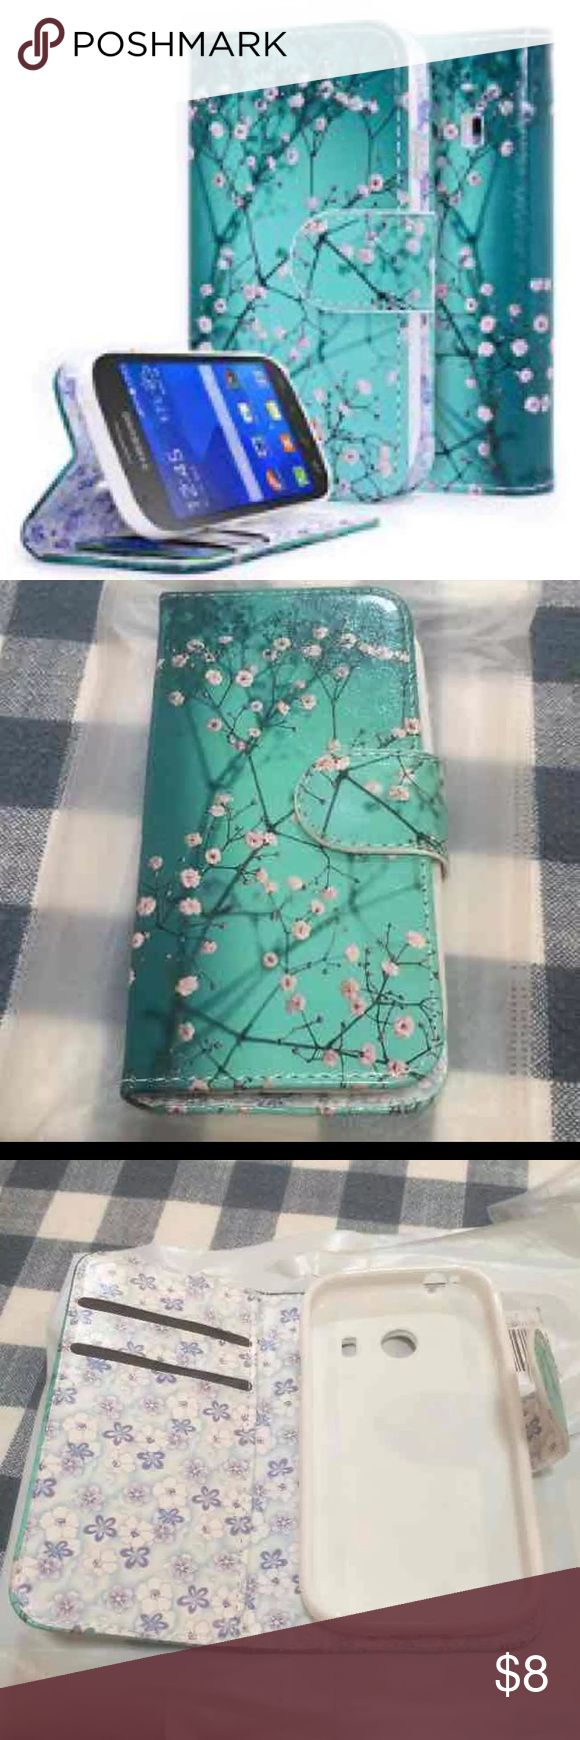 Plum Blossom  Wallet Case for Galaxy 760c  Plum blossom design Never used Opened to take picture  Galaxy Stardust Case, Galaxy Ace Style Case, NageBee - Design Dual-Use Flip PU Leather Fold Wallet Pouch Case for Samsung Galaxy Ace Style S765C / Galaxy Stardust S766C (Wallet plum blossom) Accessories Phone Cases